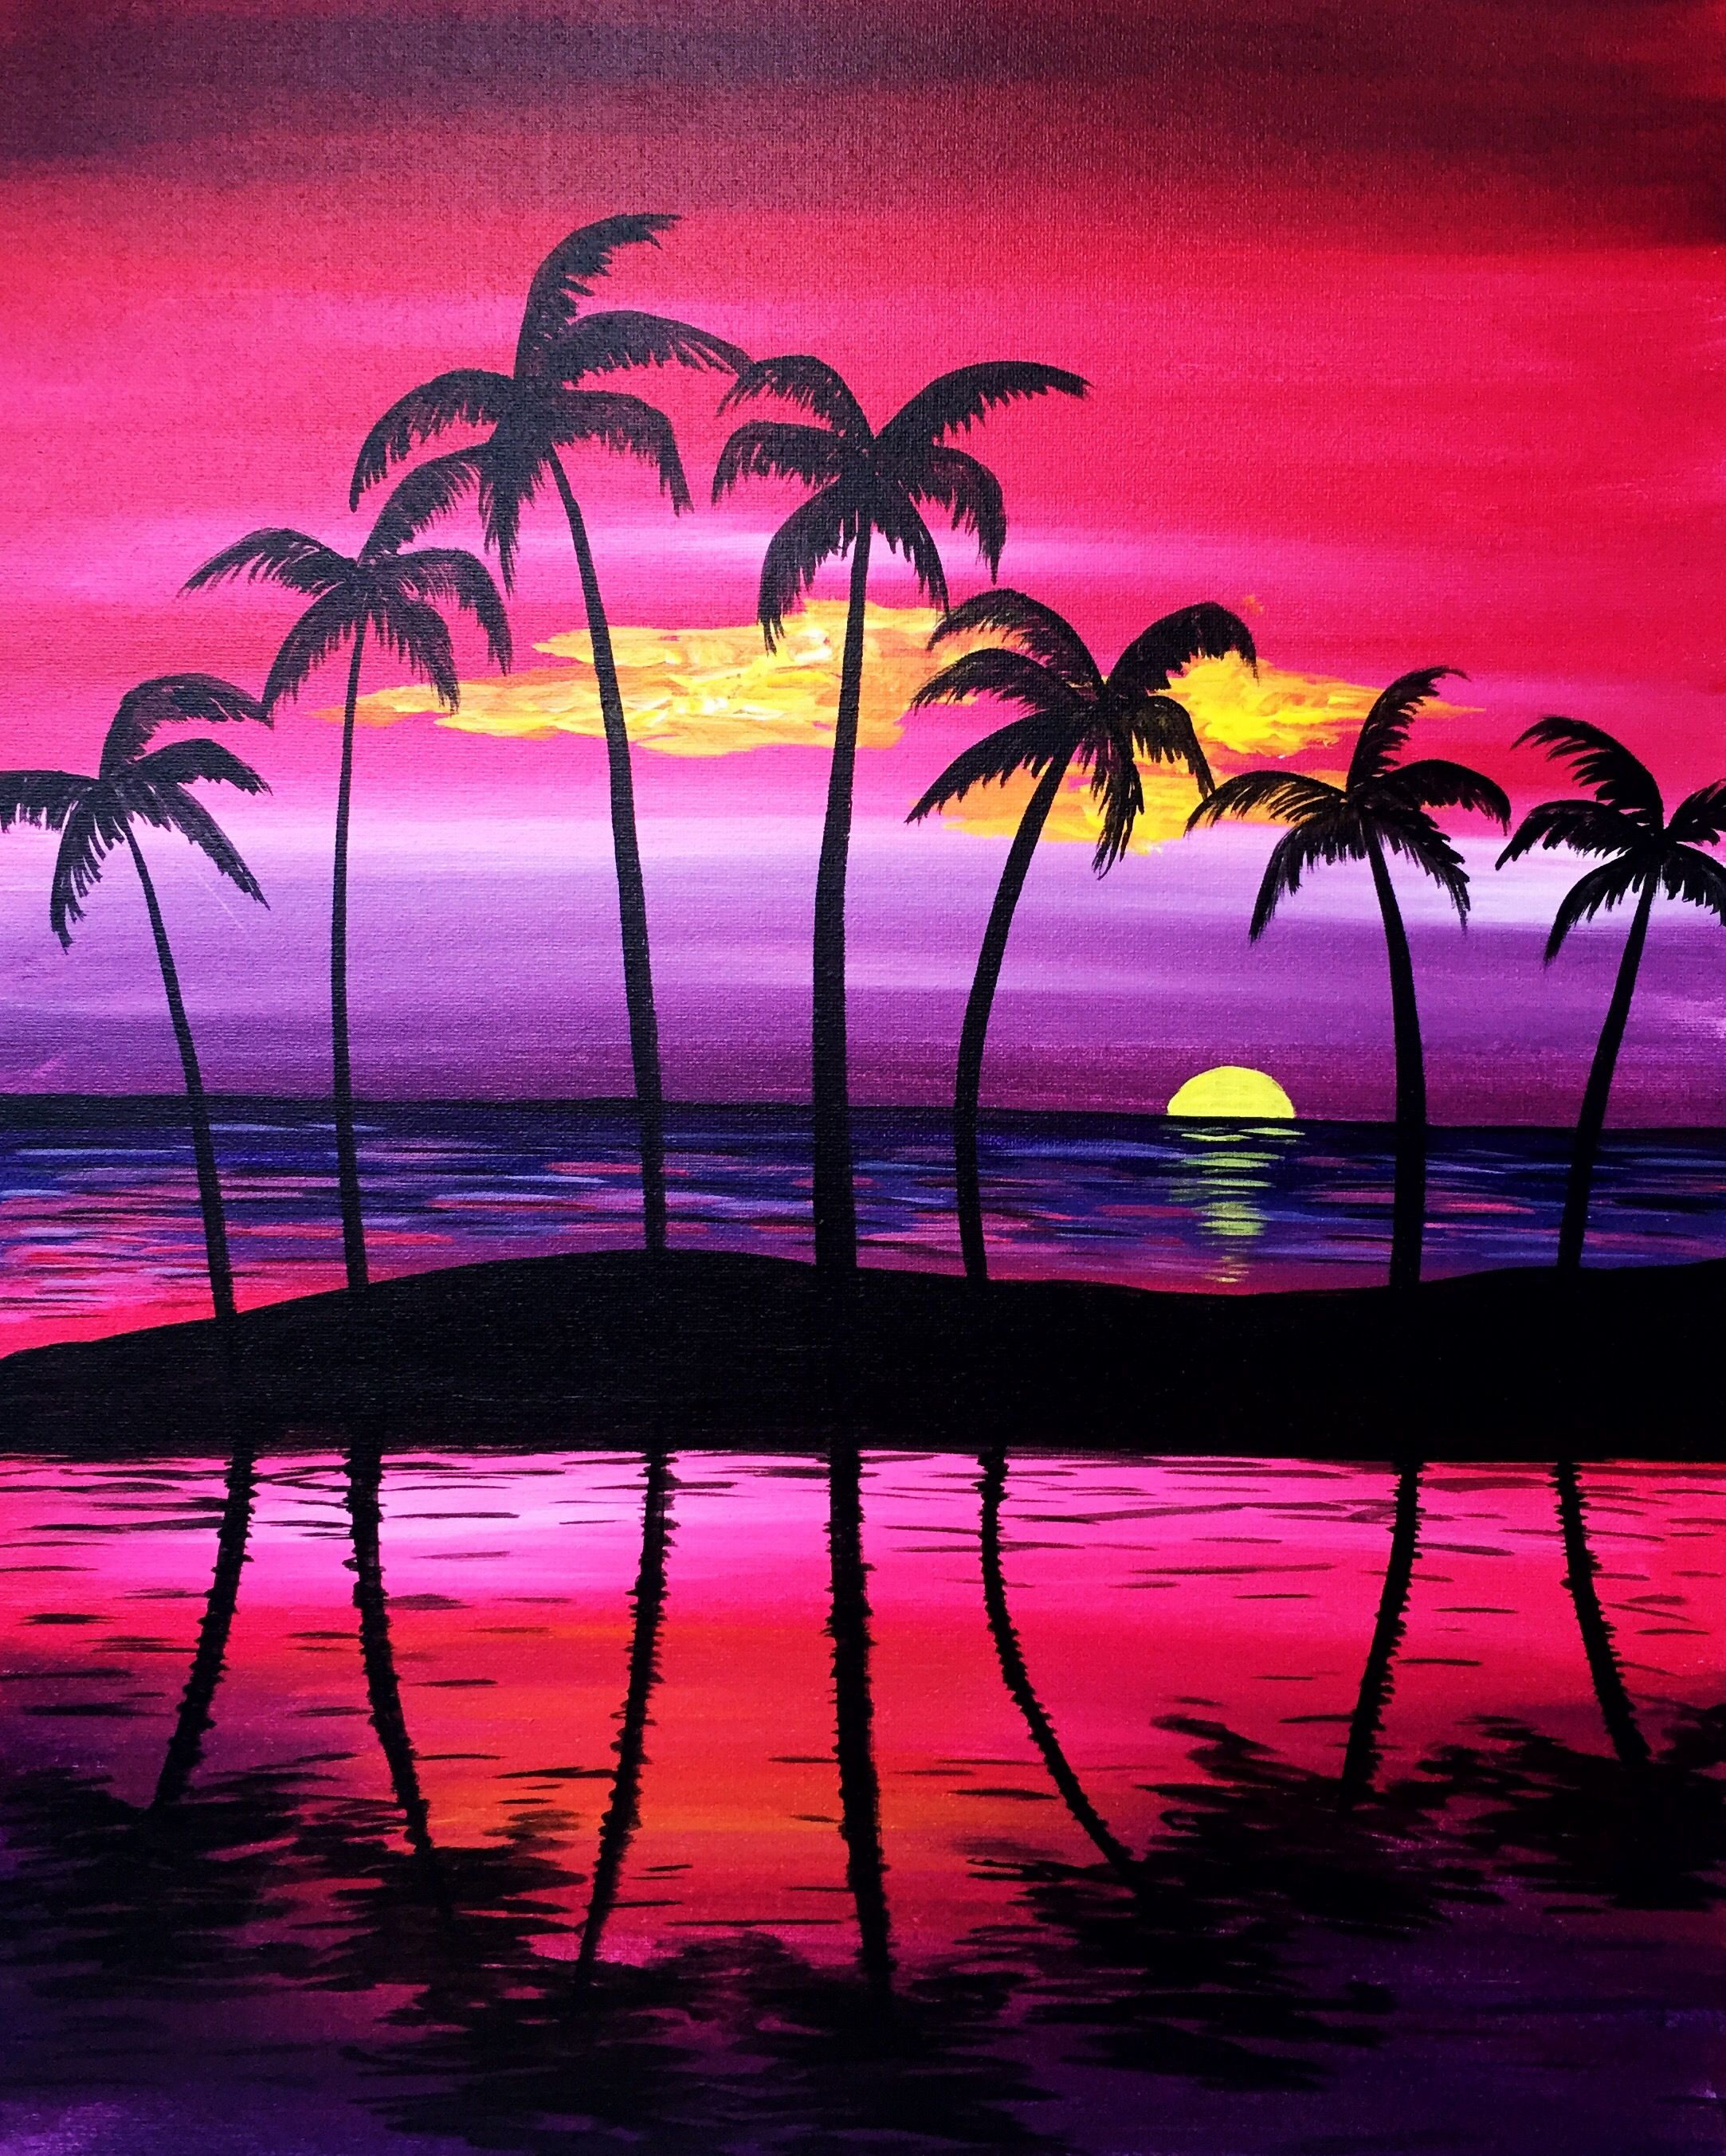 Paint Nite Drink Paint Party We Host Painting Events